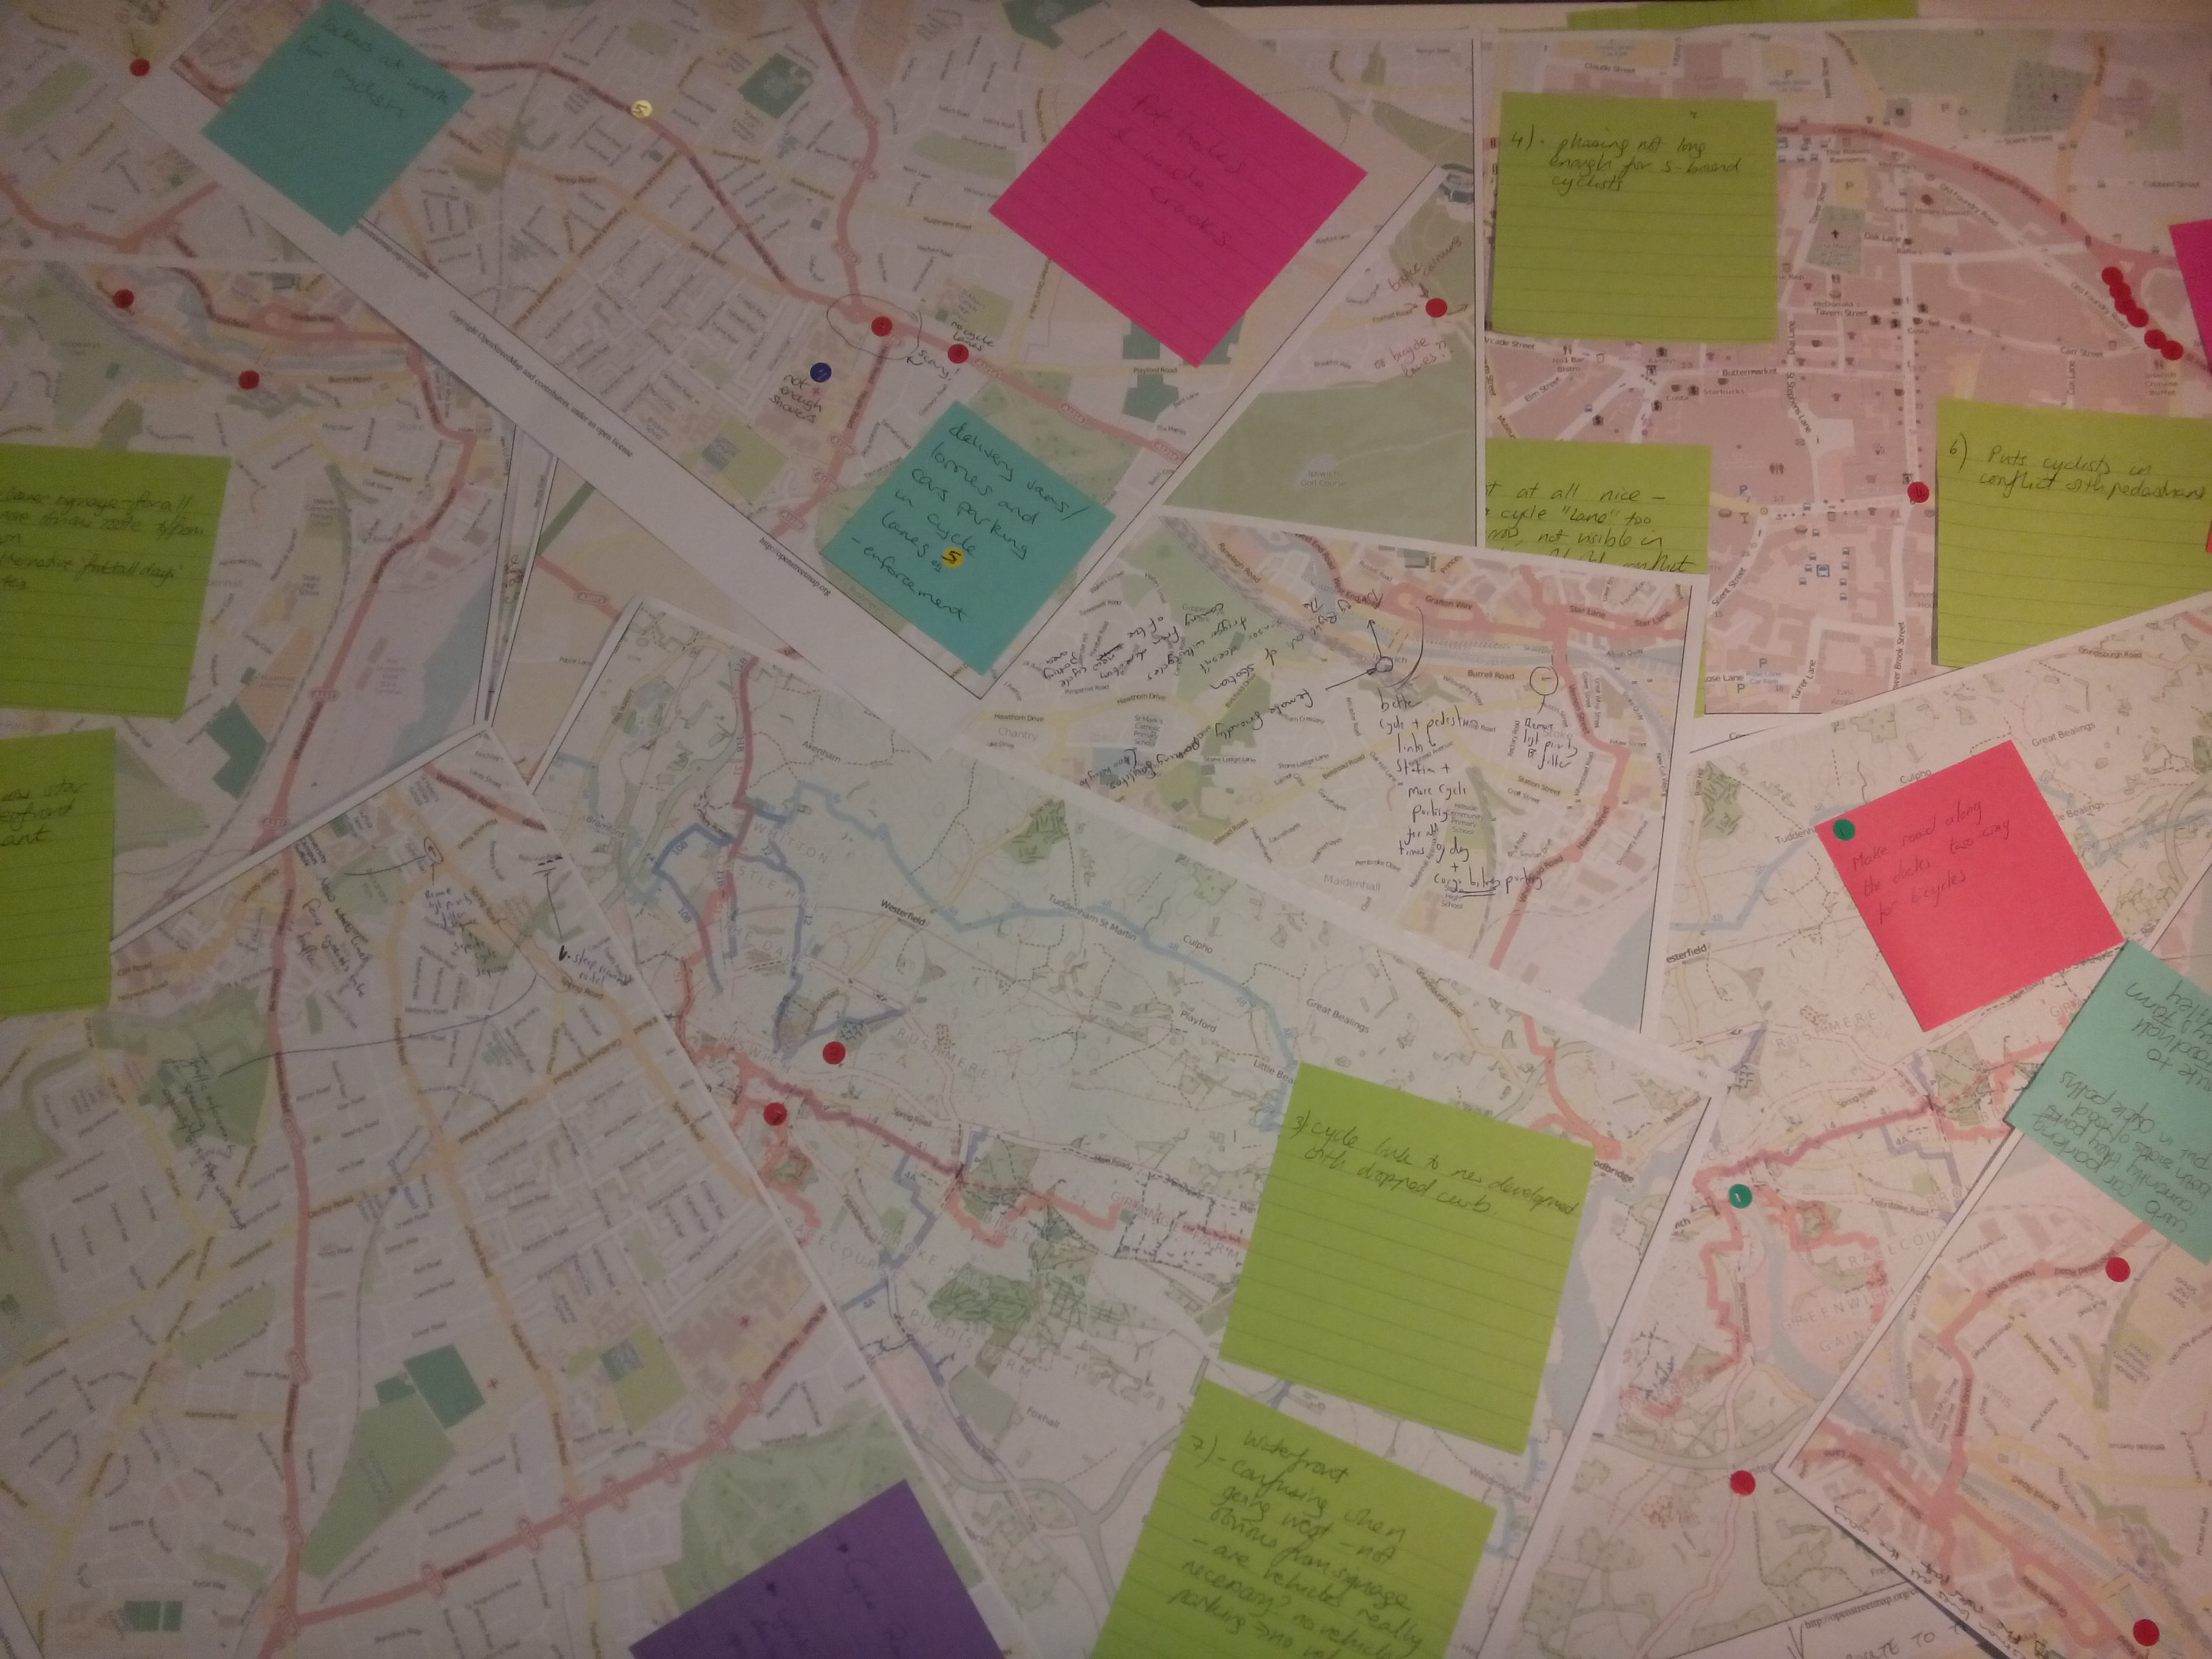 A selection of the maps with notes written on them